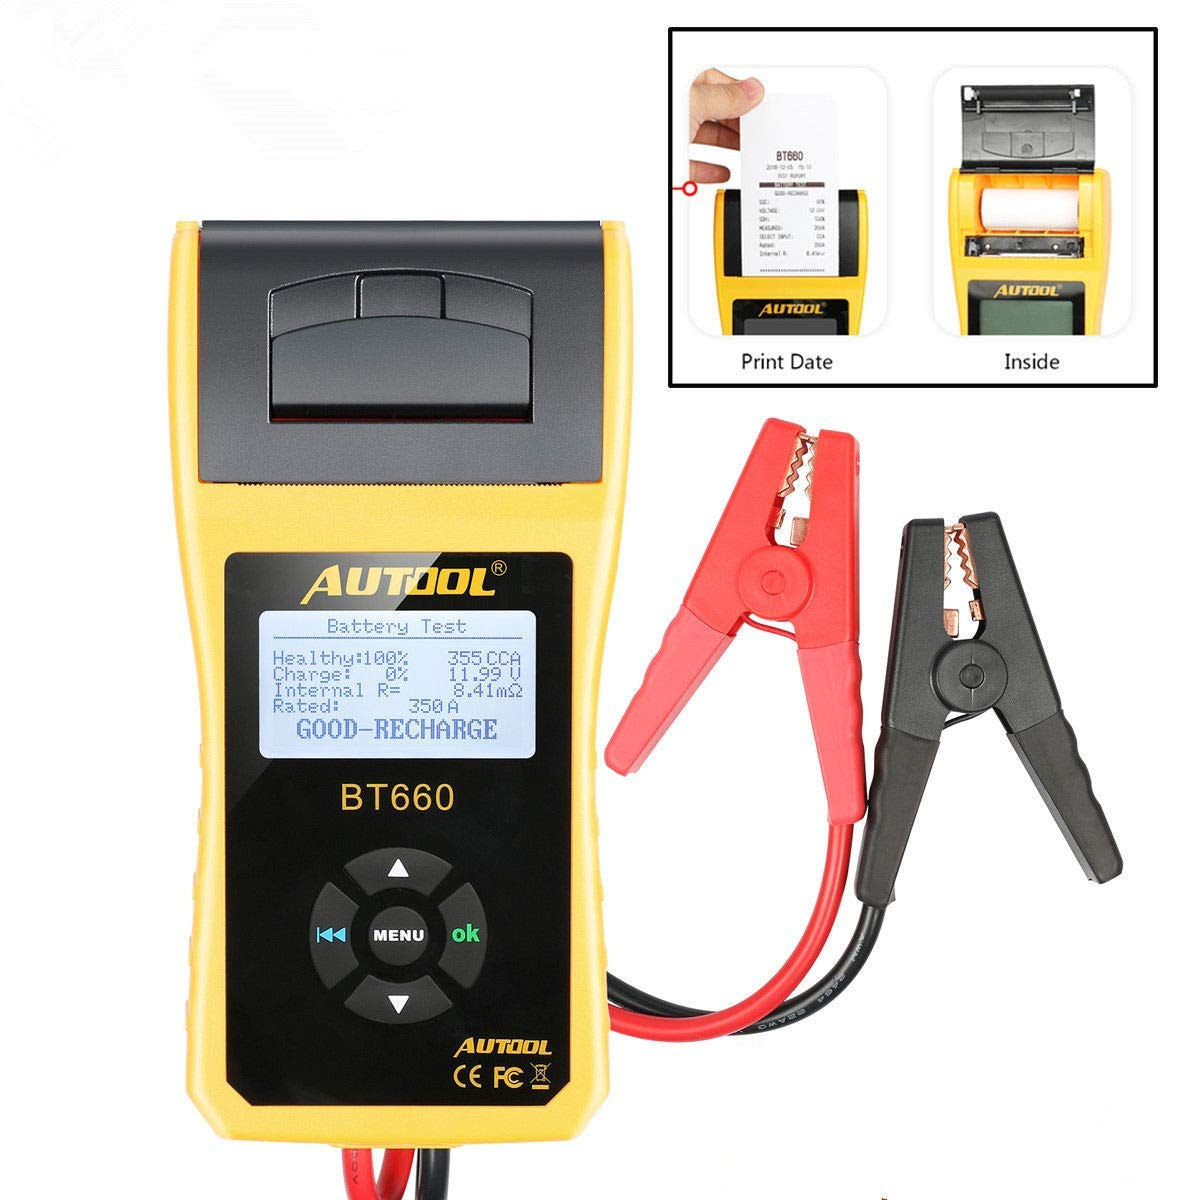 AUTOOL Automotive Battery Tester 12V/24V Car Battery System Tester Cranking and Charging Test ystem Analyzer Scan Tool with Printer (BT-660)